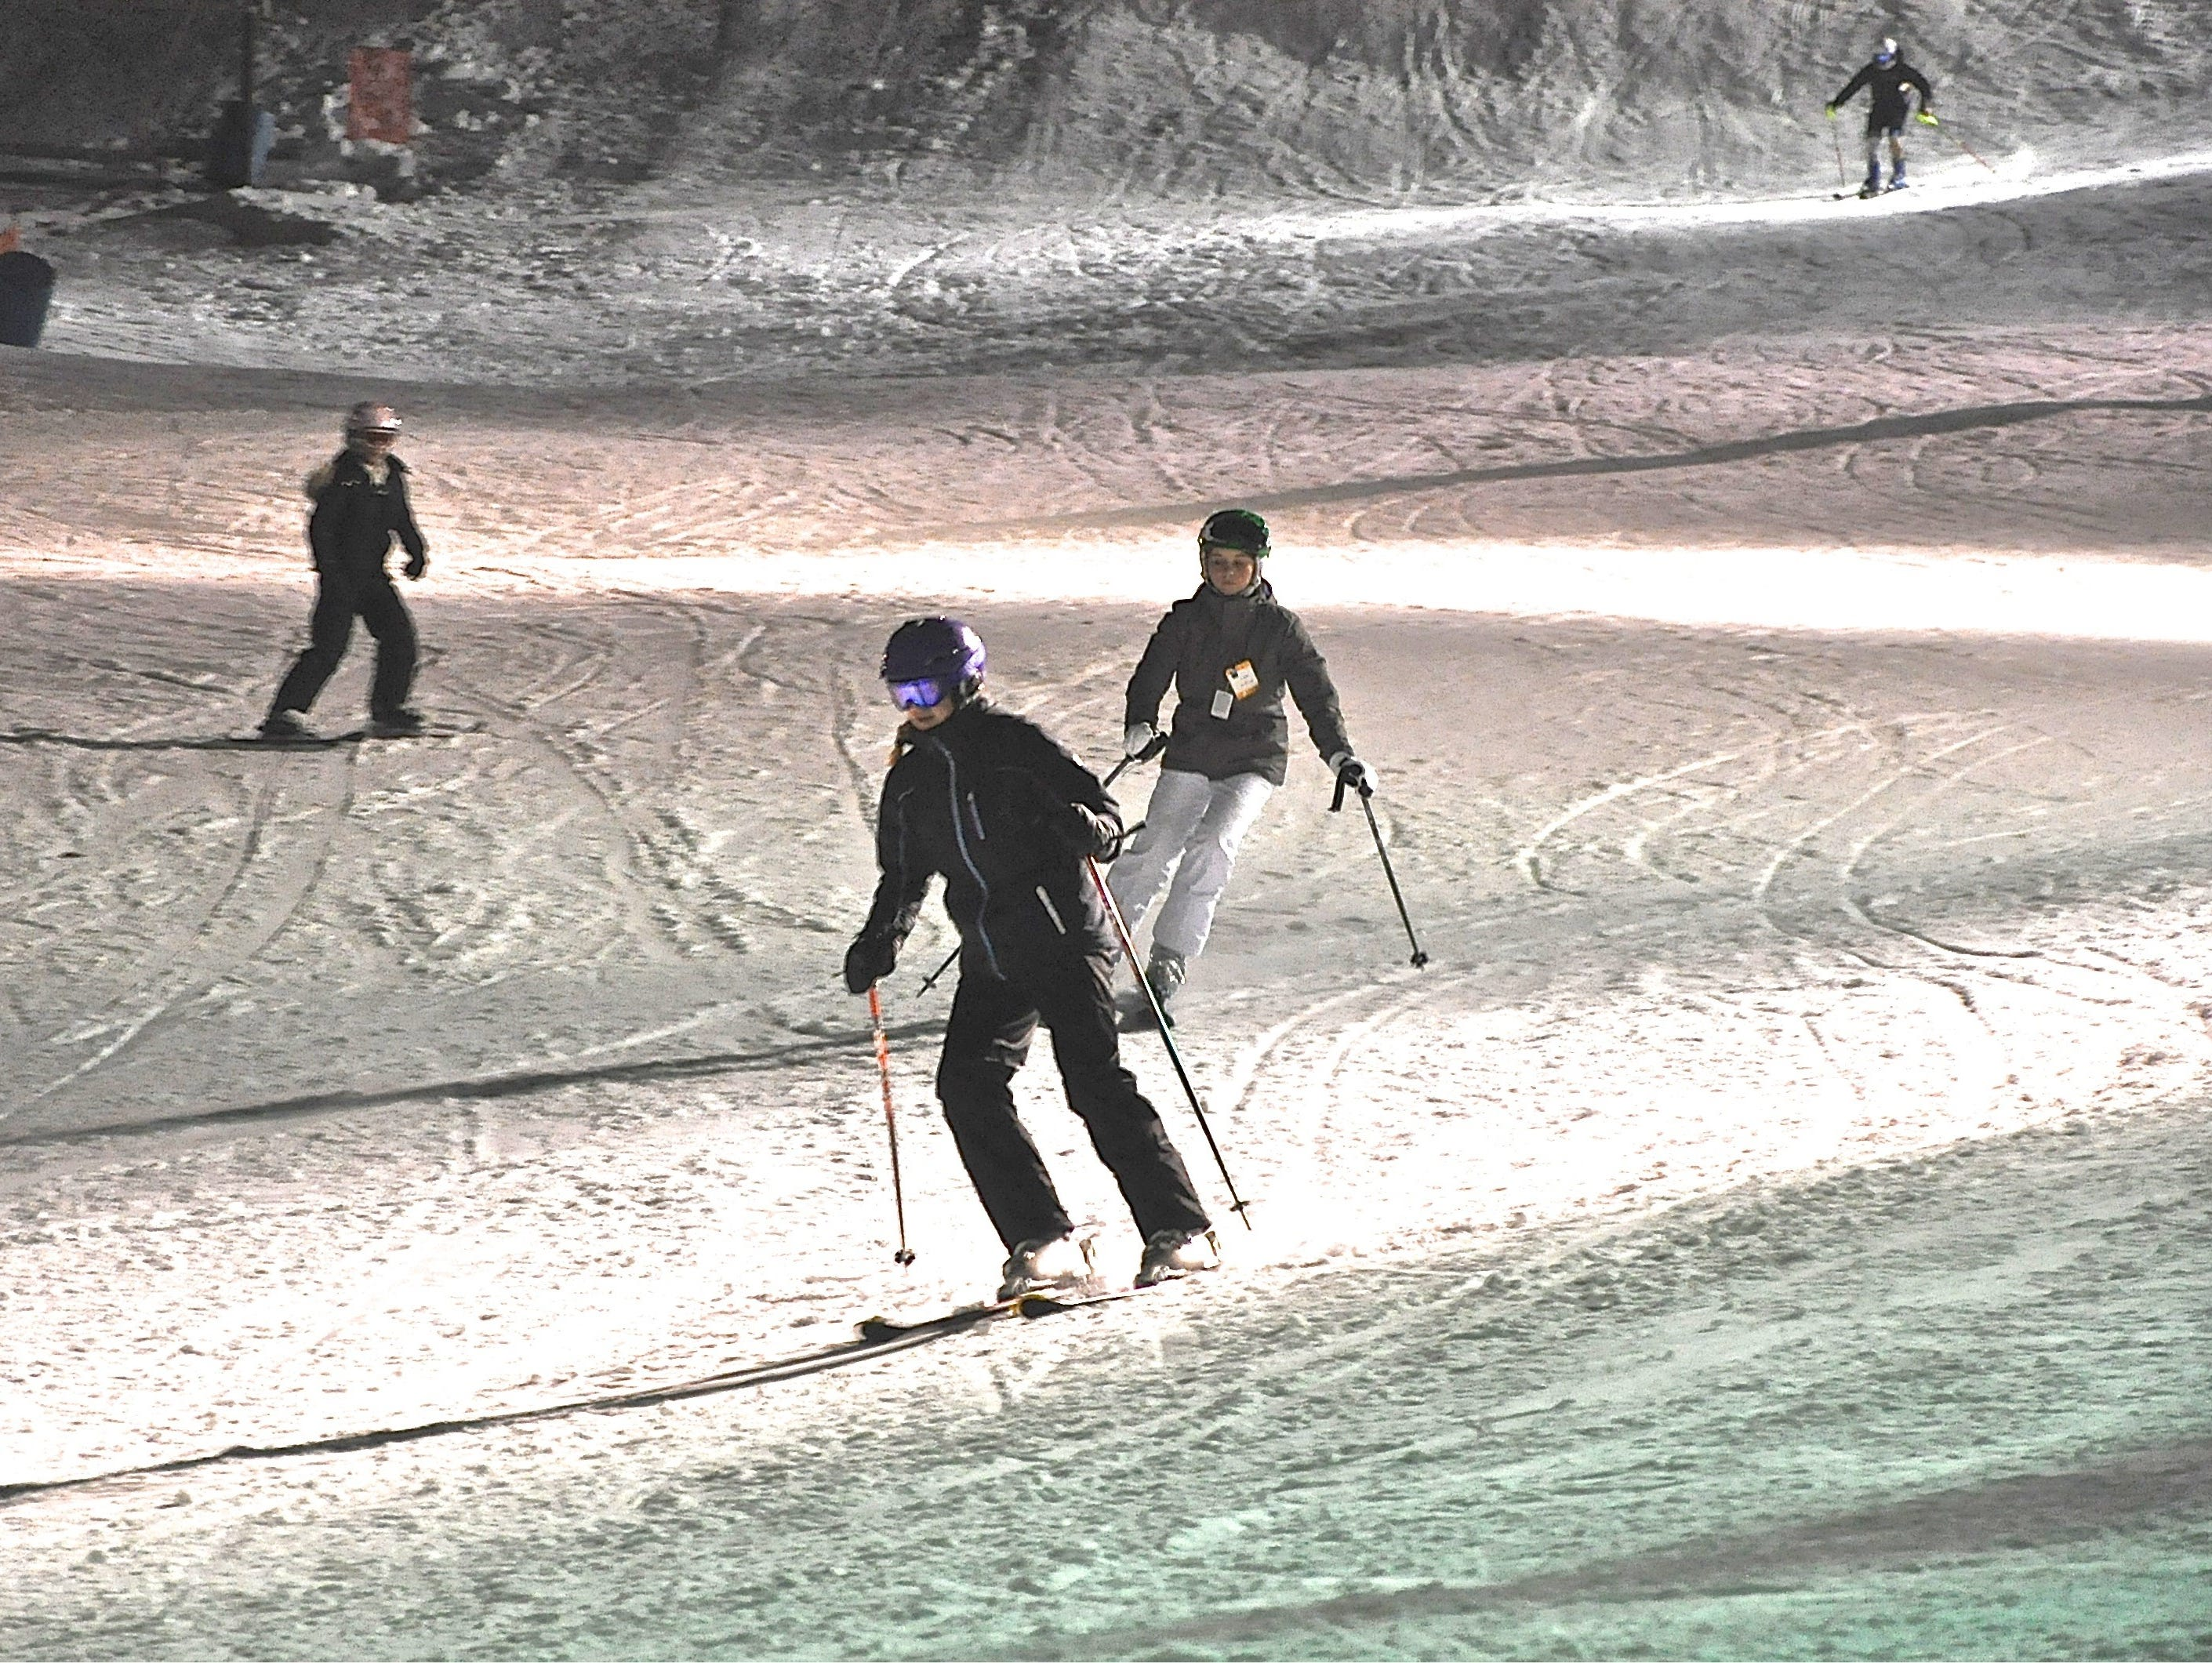 Skiers hit the slopes Thursday night at Thunder Ridge, which like Campgaw, had postponed opening due to mild weather.